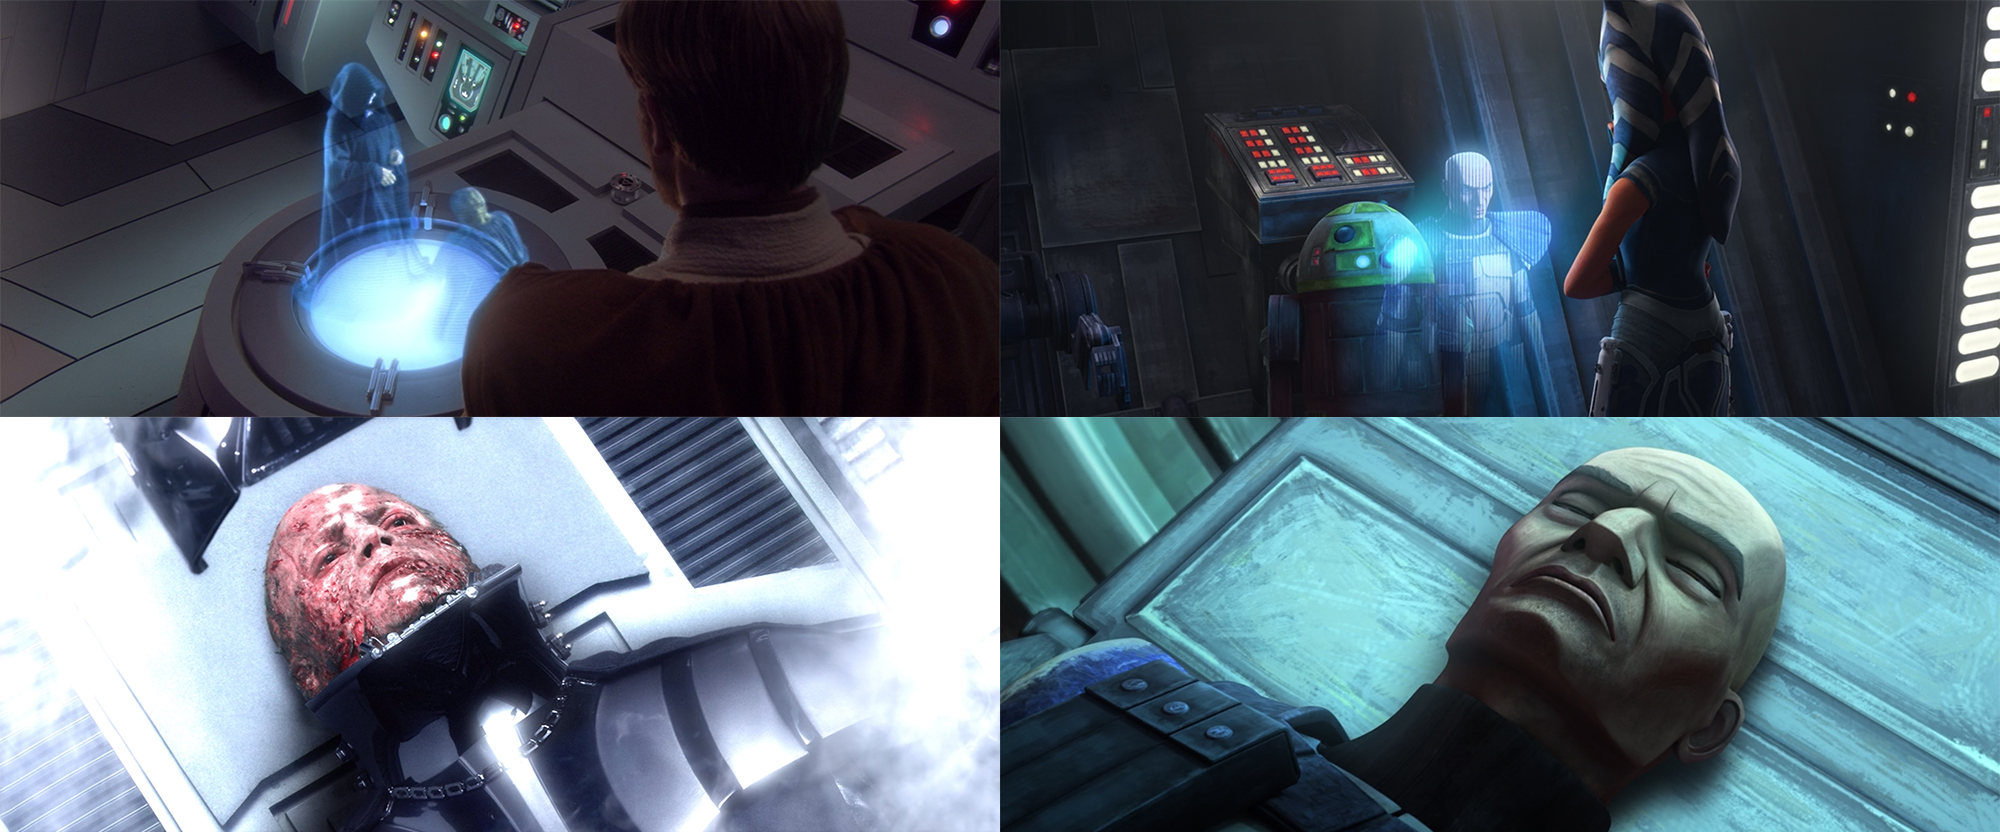 end of the clone wars 10 - analyses and operations